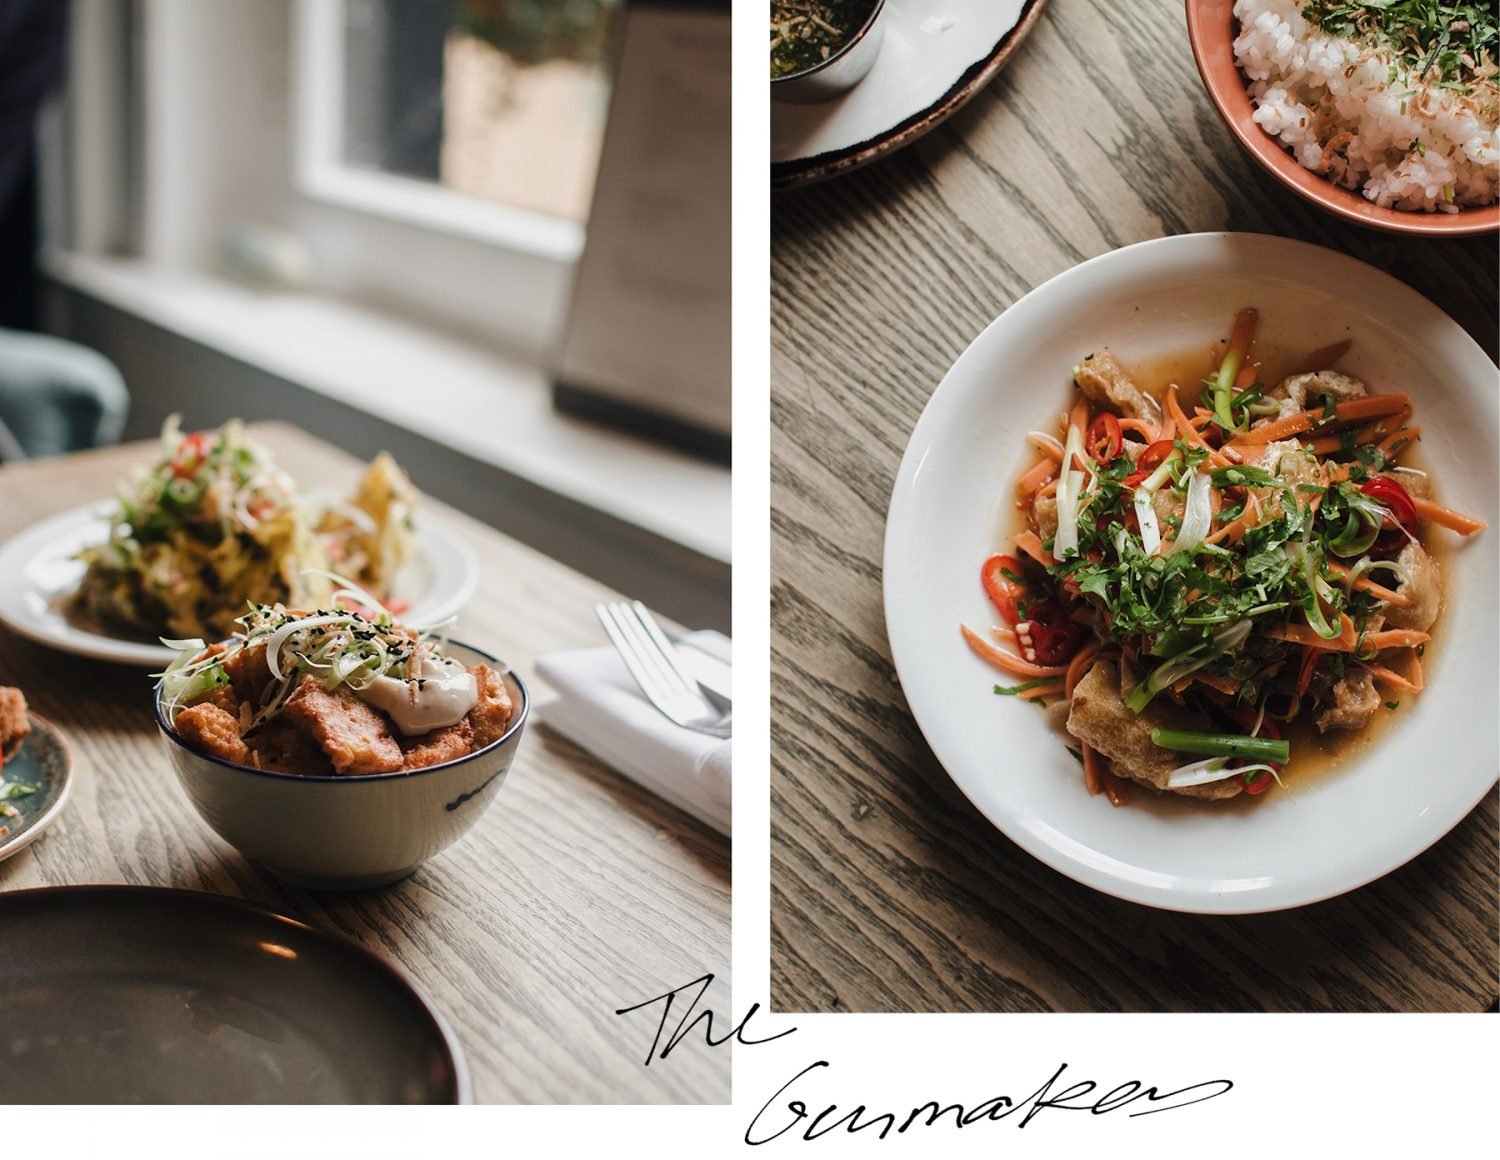 The Gunmakers – Pub food at its finest